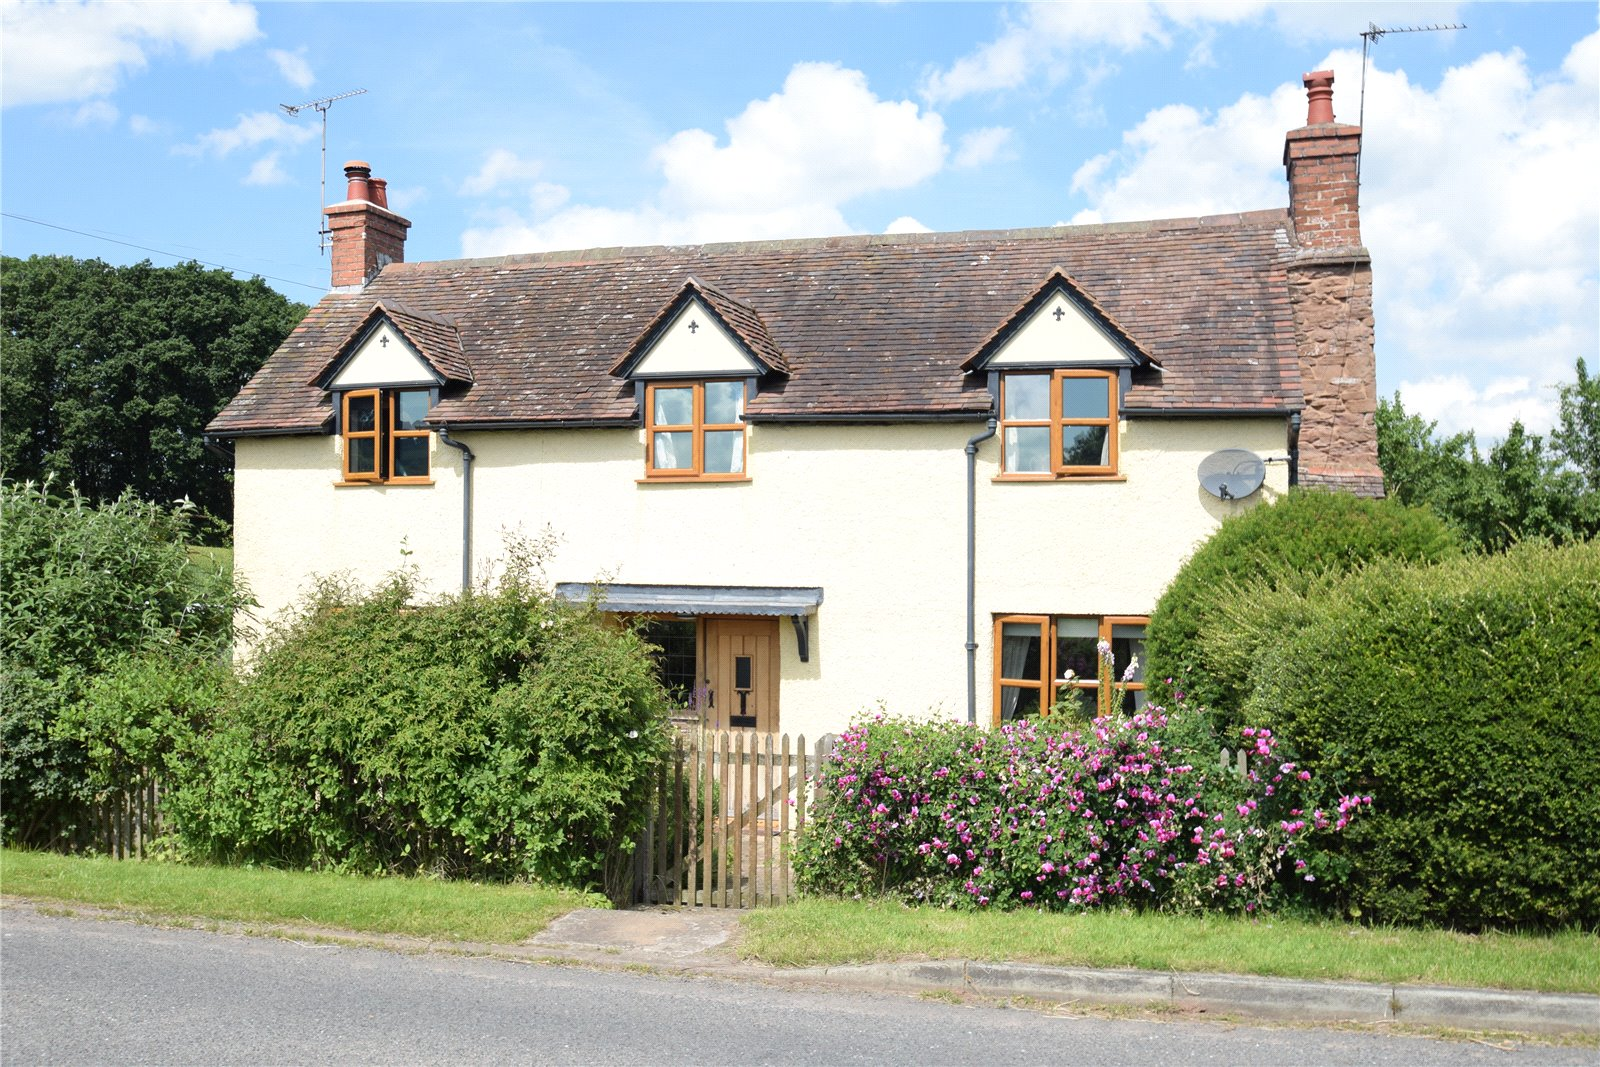 Gorsty Cottage, St. Michaels, Tenbury Wells, WR15